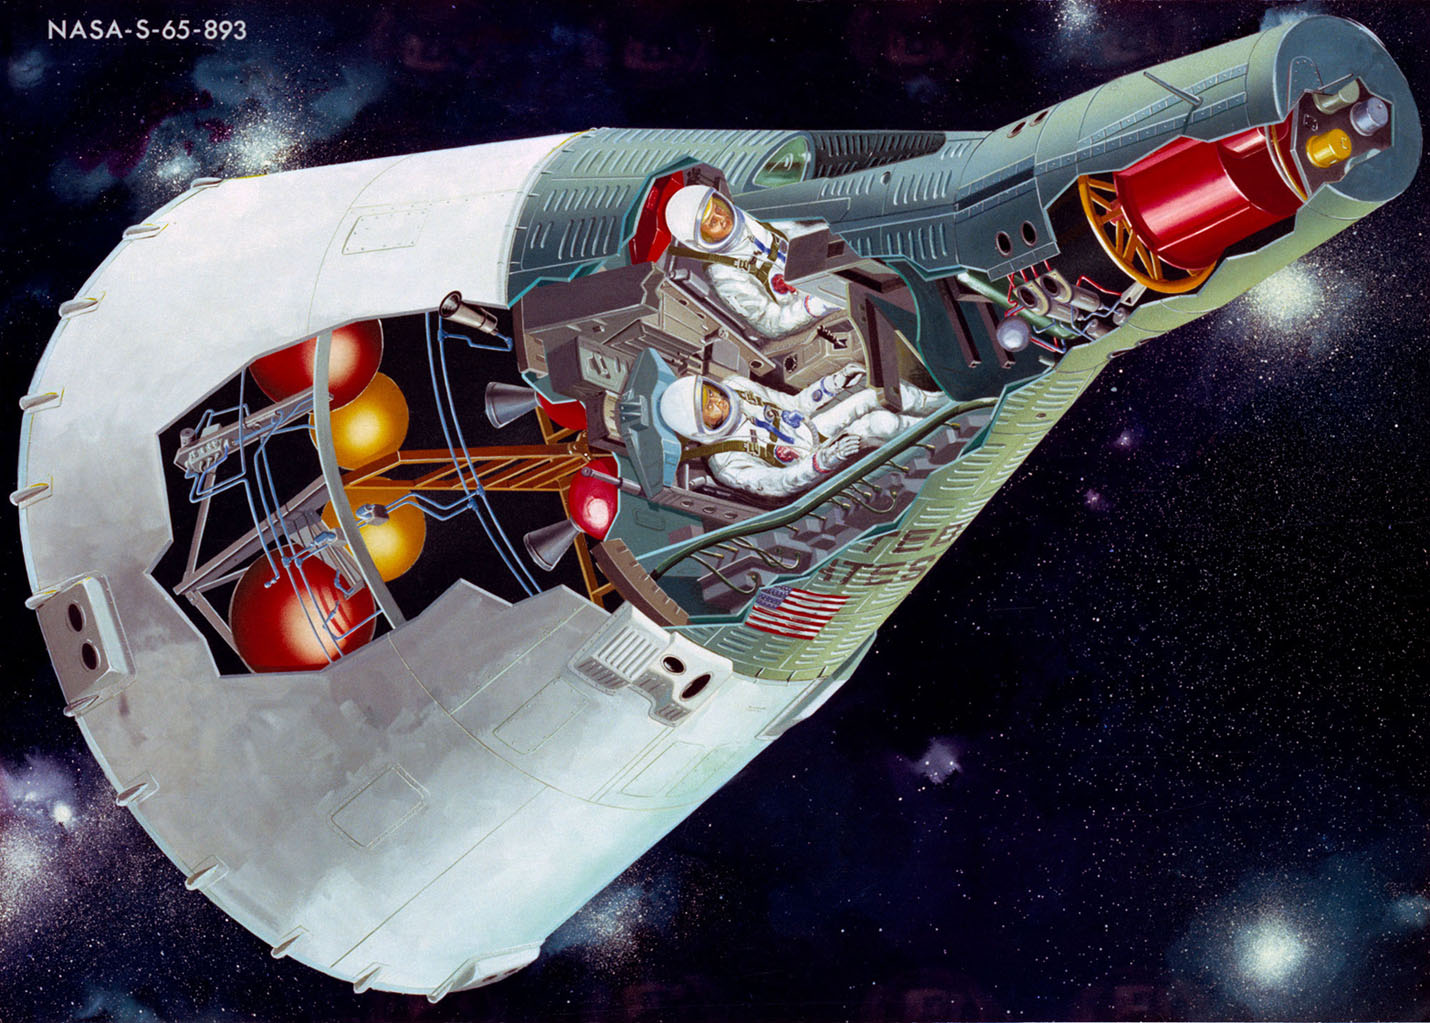 medium resolution of cutaway illustration of a gemini spacecraft displaying its forward facing windows ejection seats nose mounted rendezvous radar and parachutes